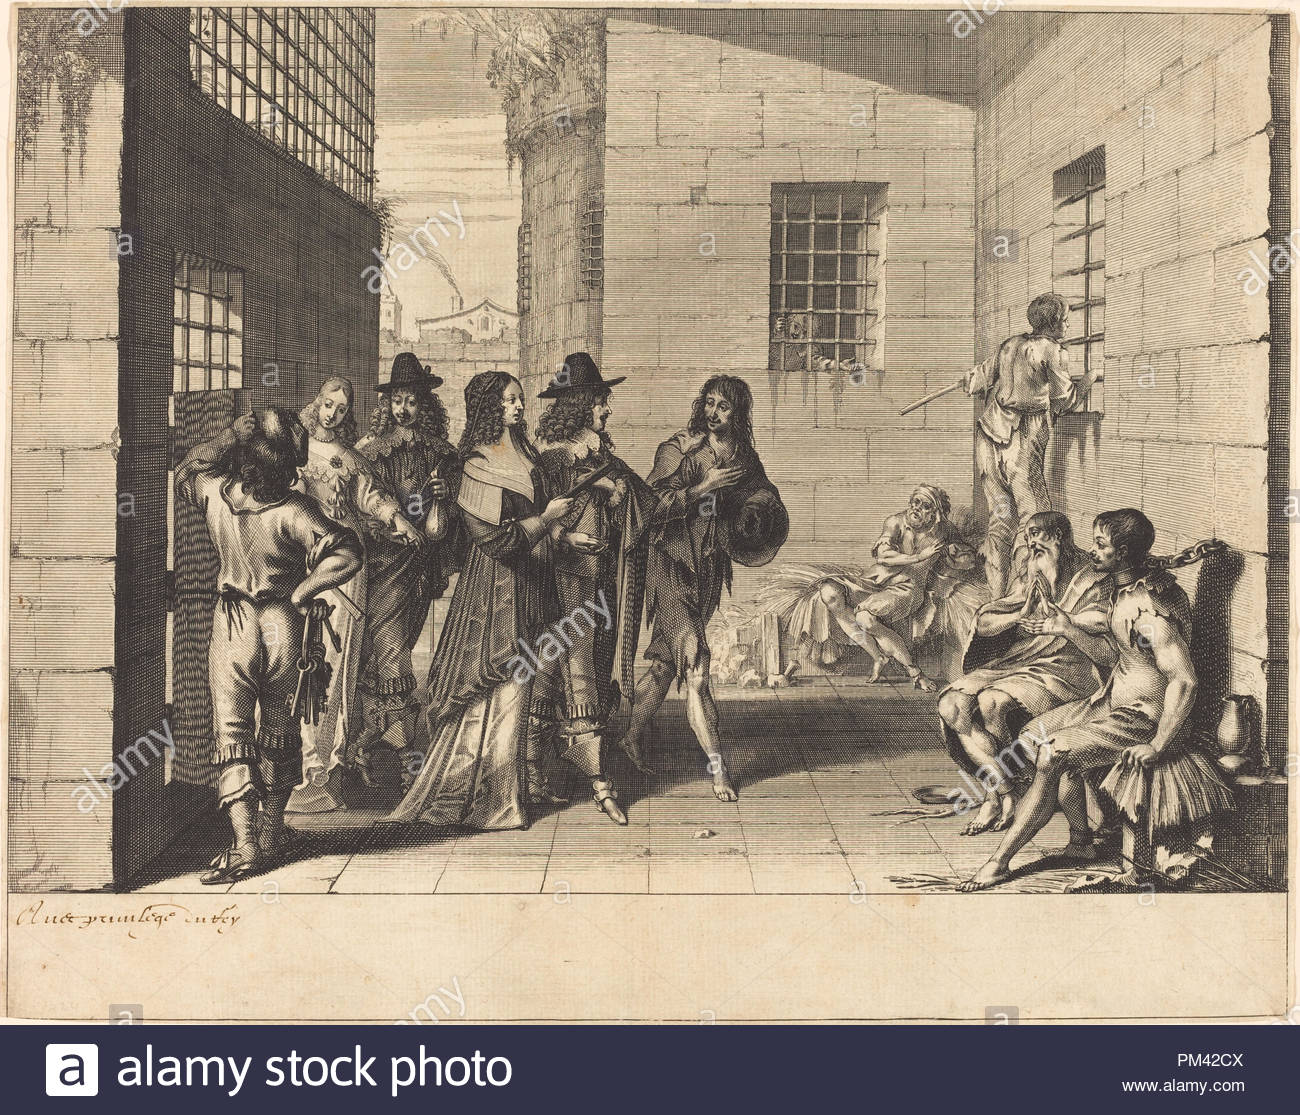 Gentry Visiting a Prison. Dimensions: sheet (trimmed to plate mark): 25.4 x 32.2 cm (10 x 12 11/16 in.). Medium: engraving with etching. Museum: National Gallery of Art, Washington DC. Author: ABRAHAM BOSSE. - Stock Image